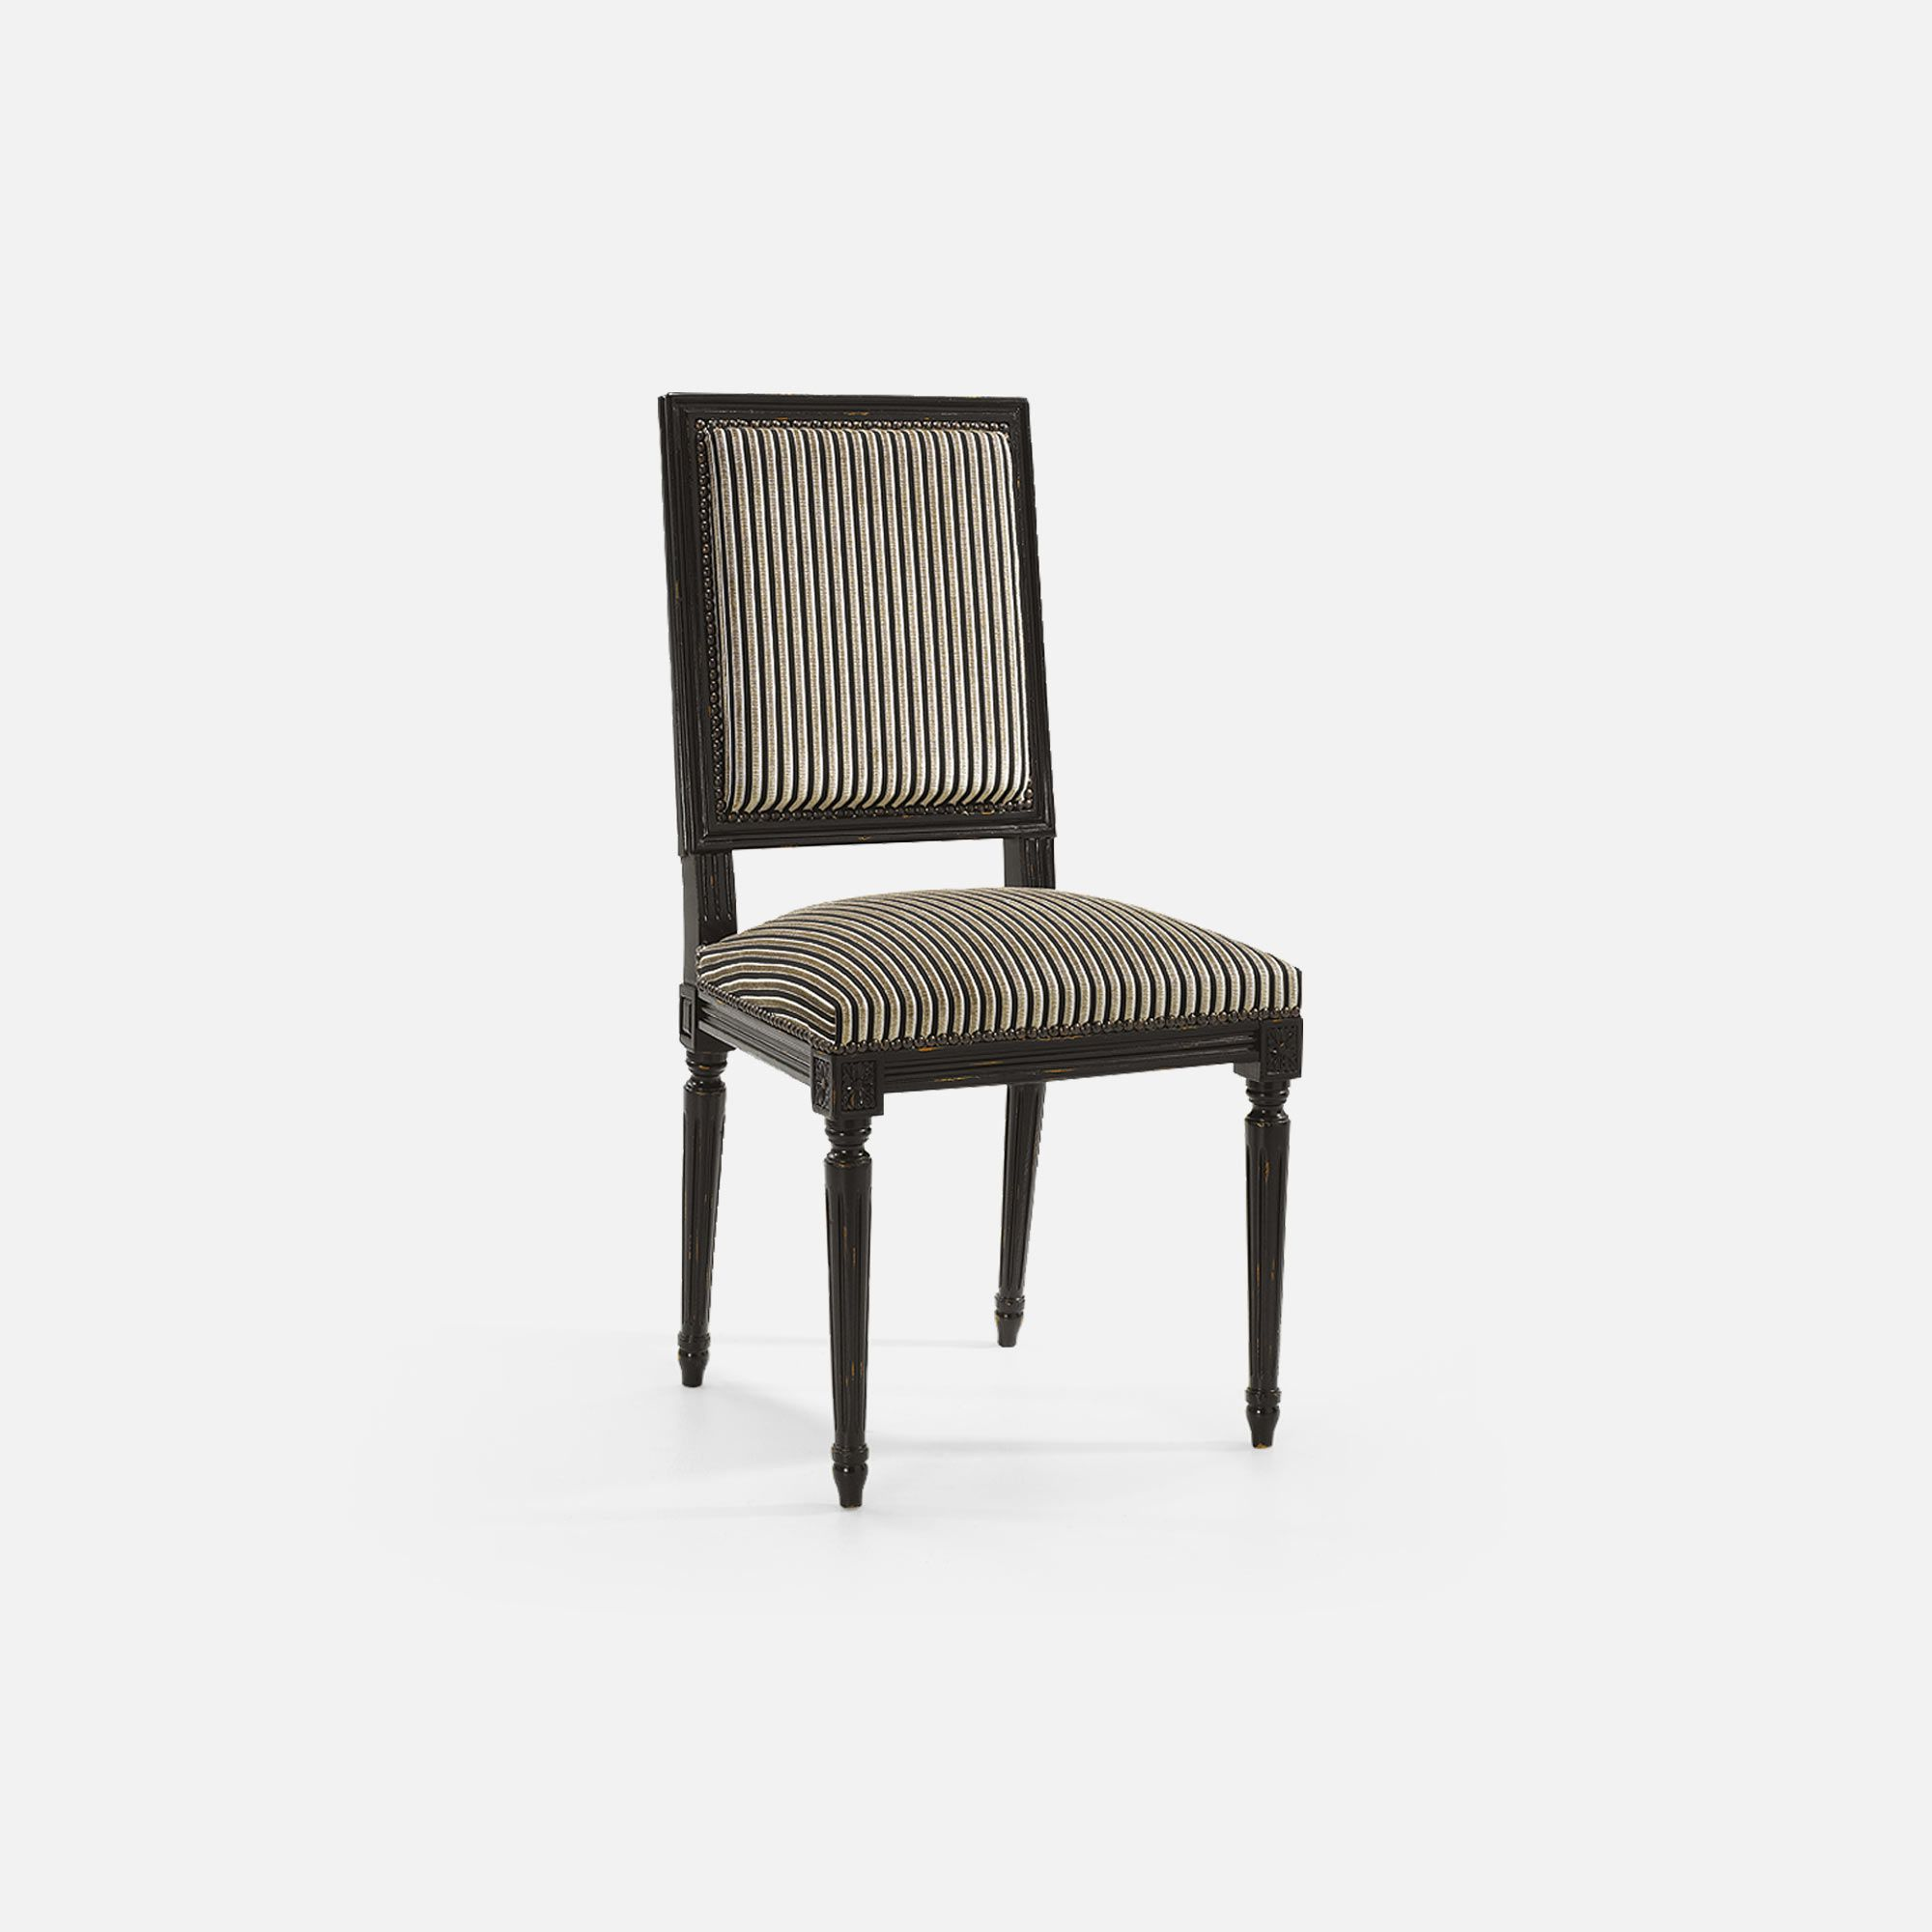 chair for hotel restaurant bar louis xvi collinet. Black Bedroom Furniture Sets. Home Design Ideas